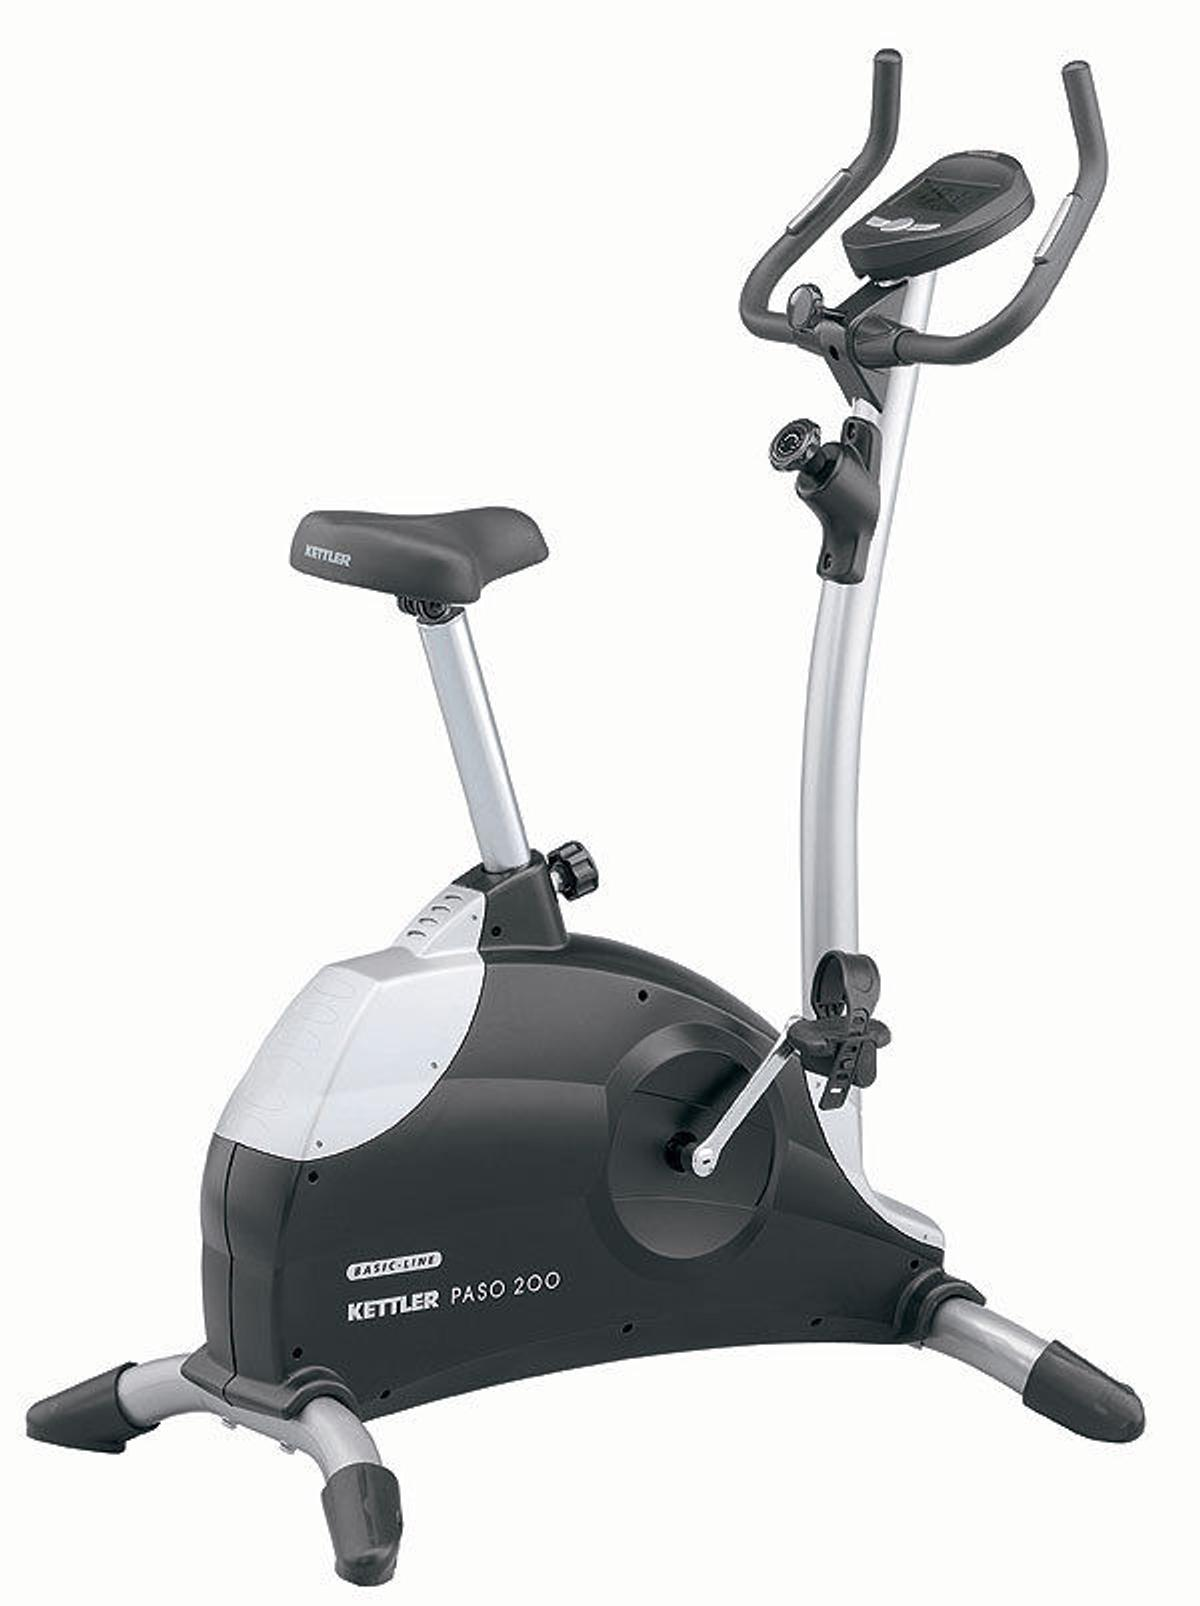 Hedendaags Kettler Paso 200 in CF14 Cardiff for £30.00 for sale - Shpock MZ-18